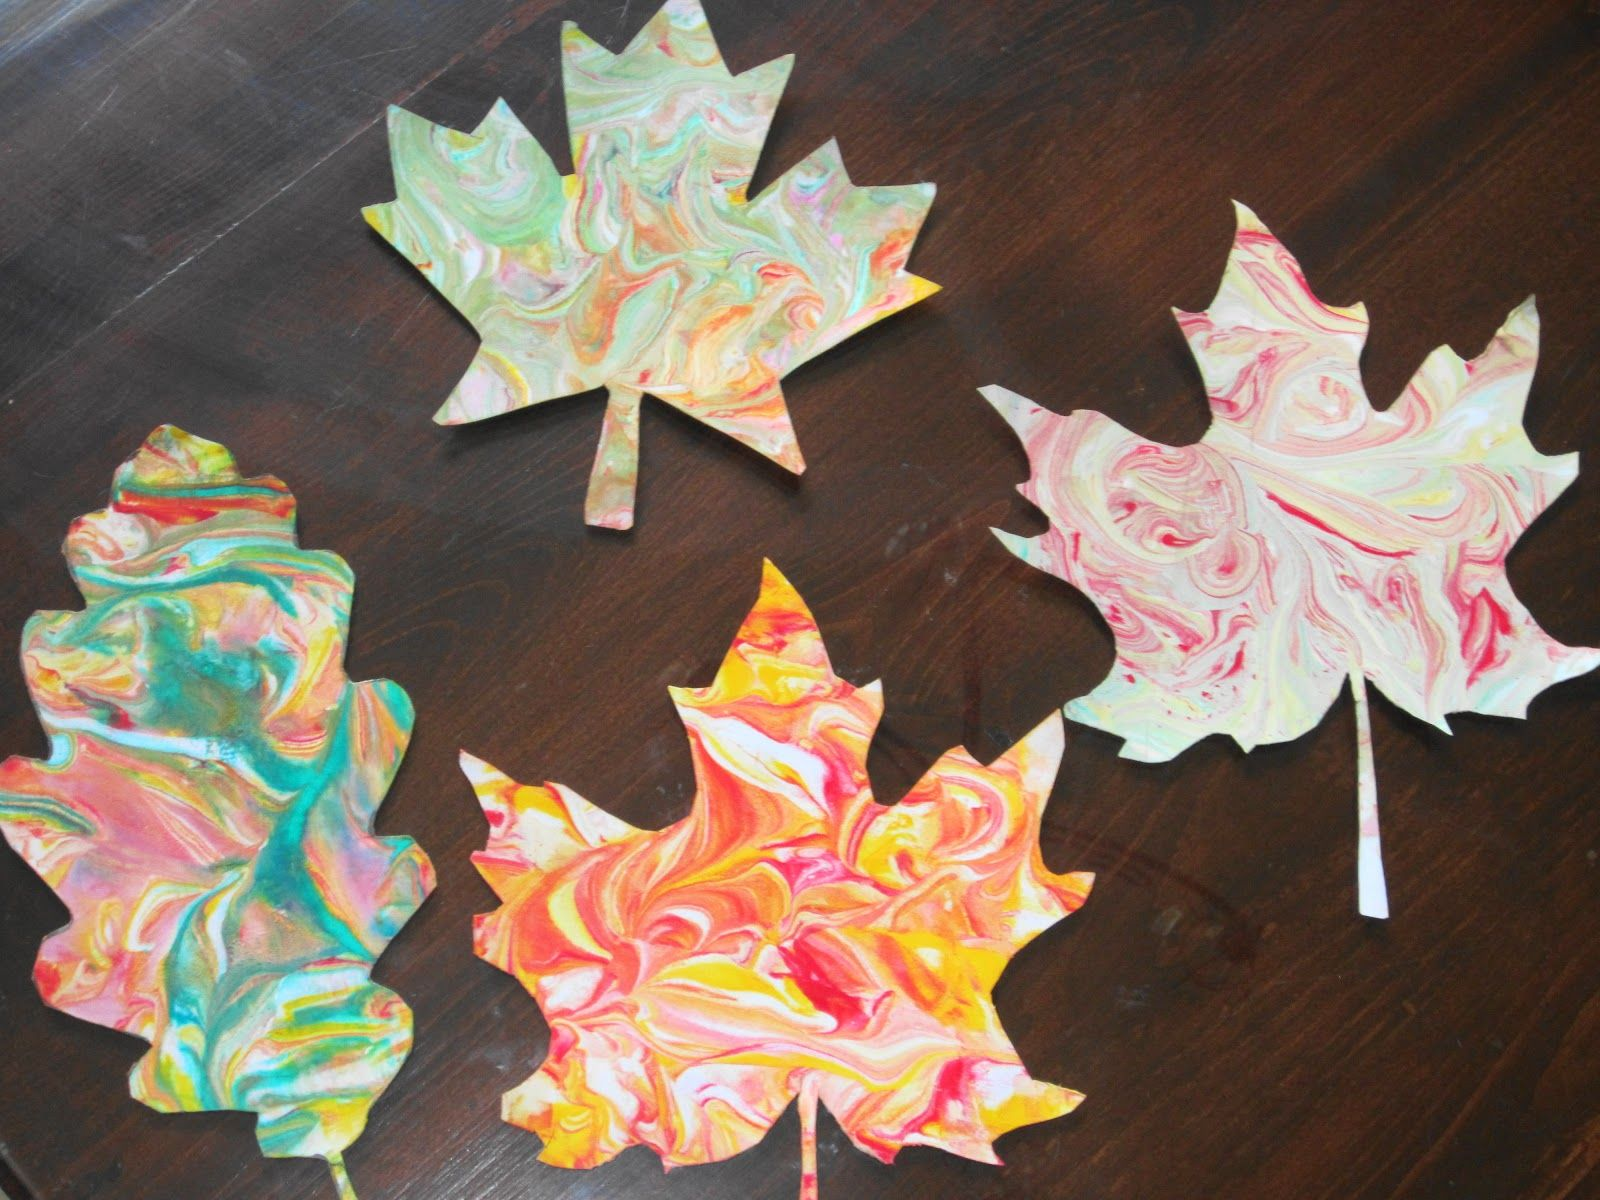 CANCELLED Fall Craft for Adults - Marbled Fall Leaves